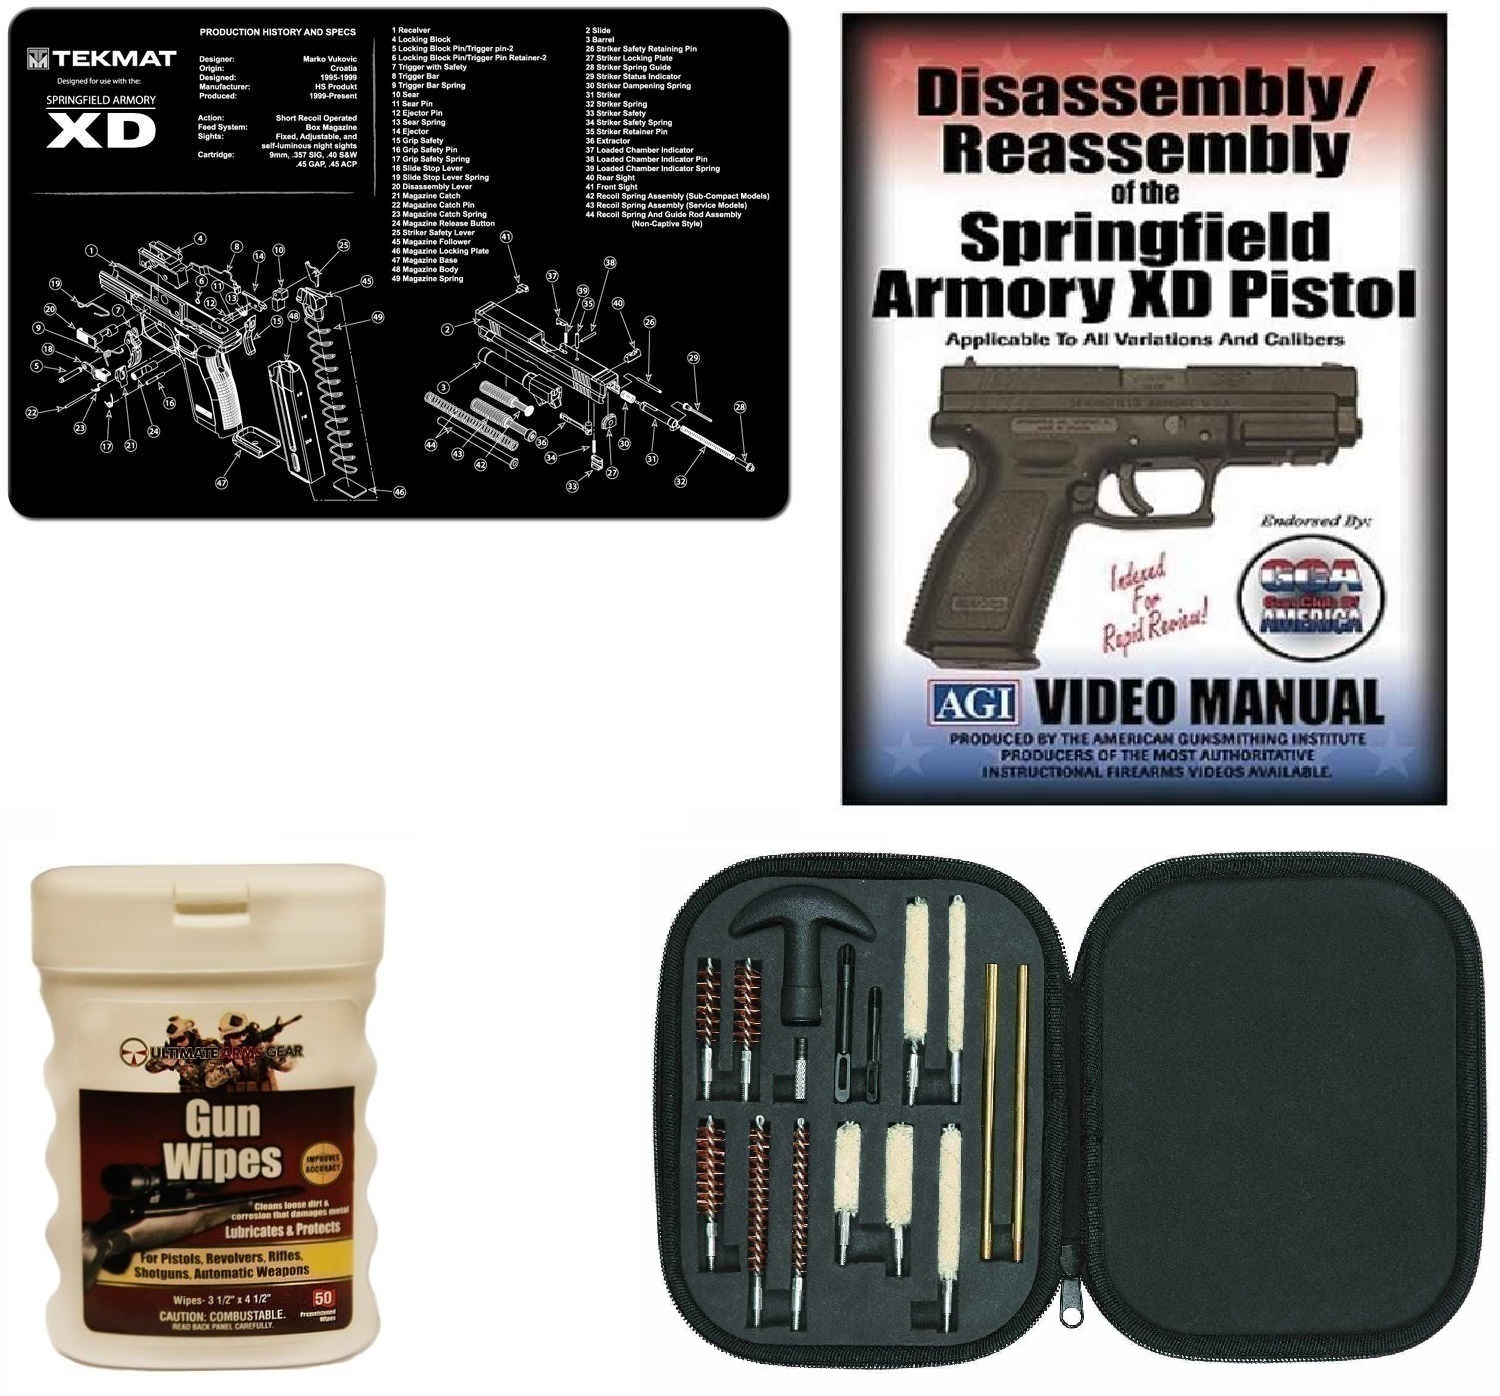 Cleaning Kit for Full Arms Gun Armory Gun Rifle All Calibers